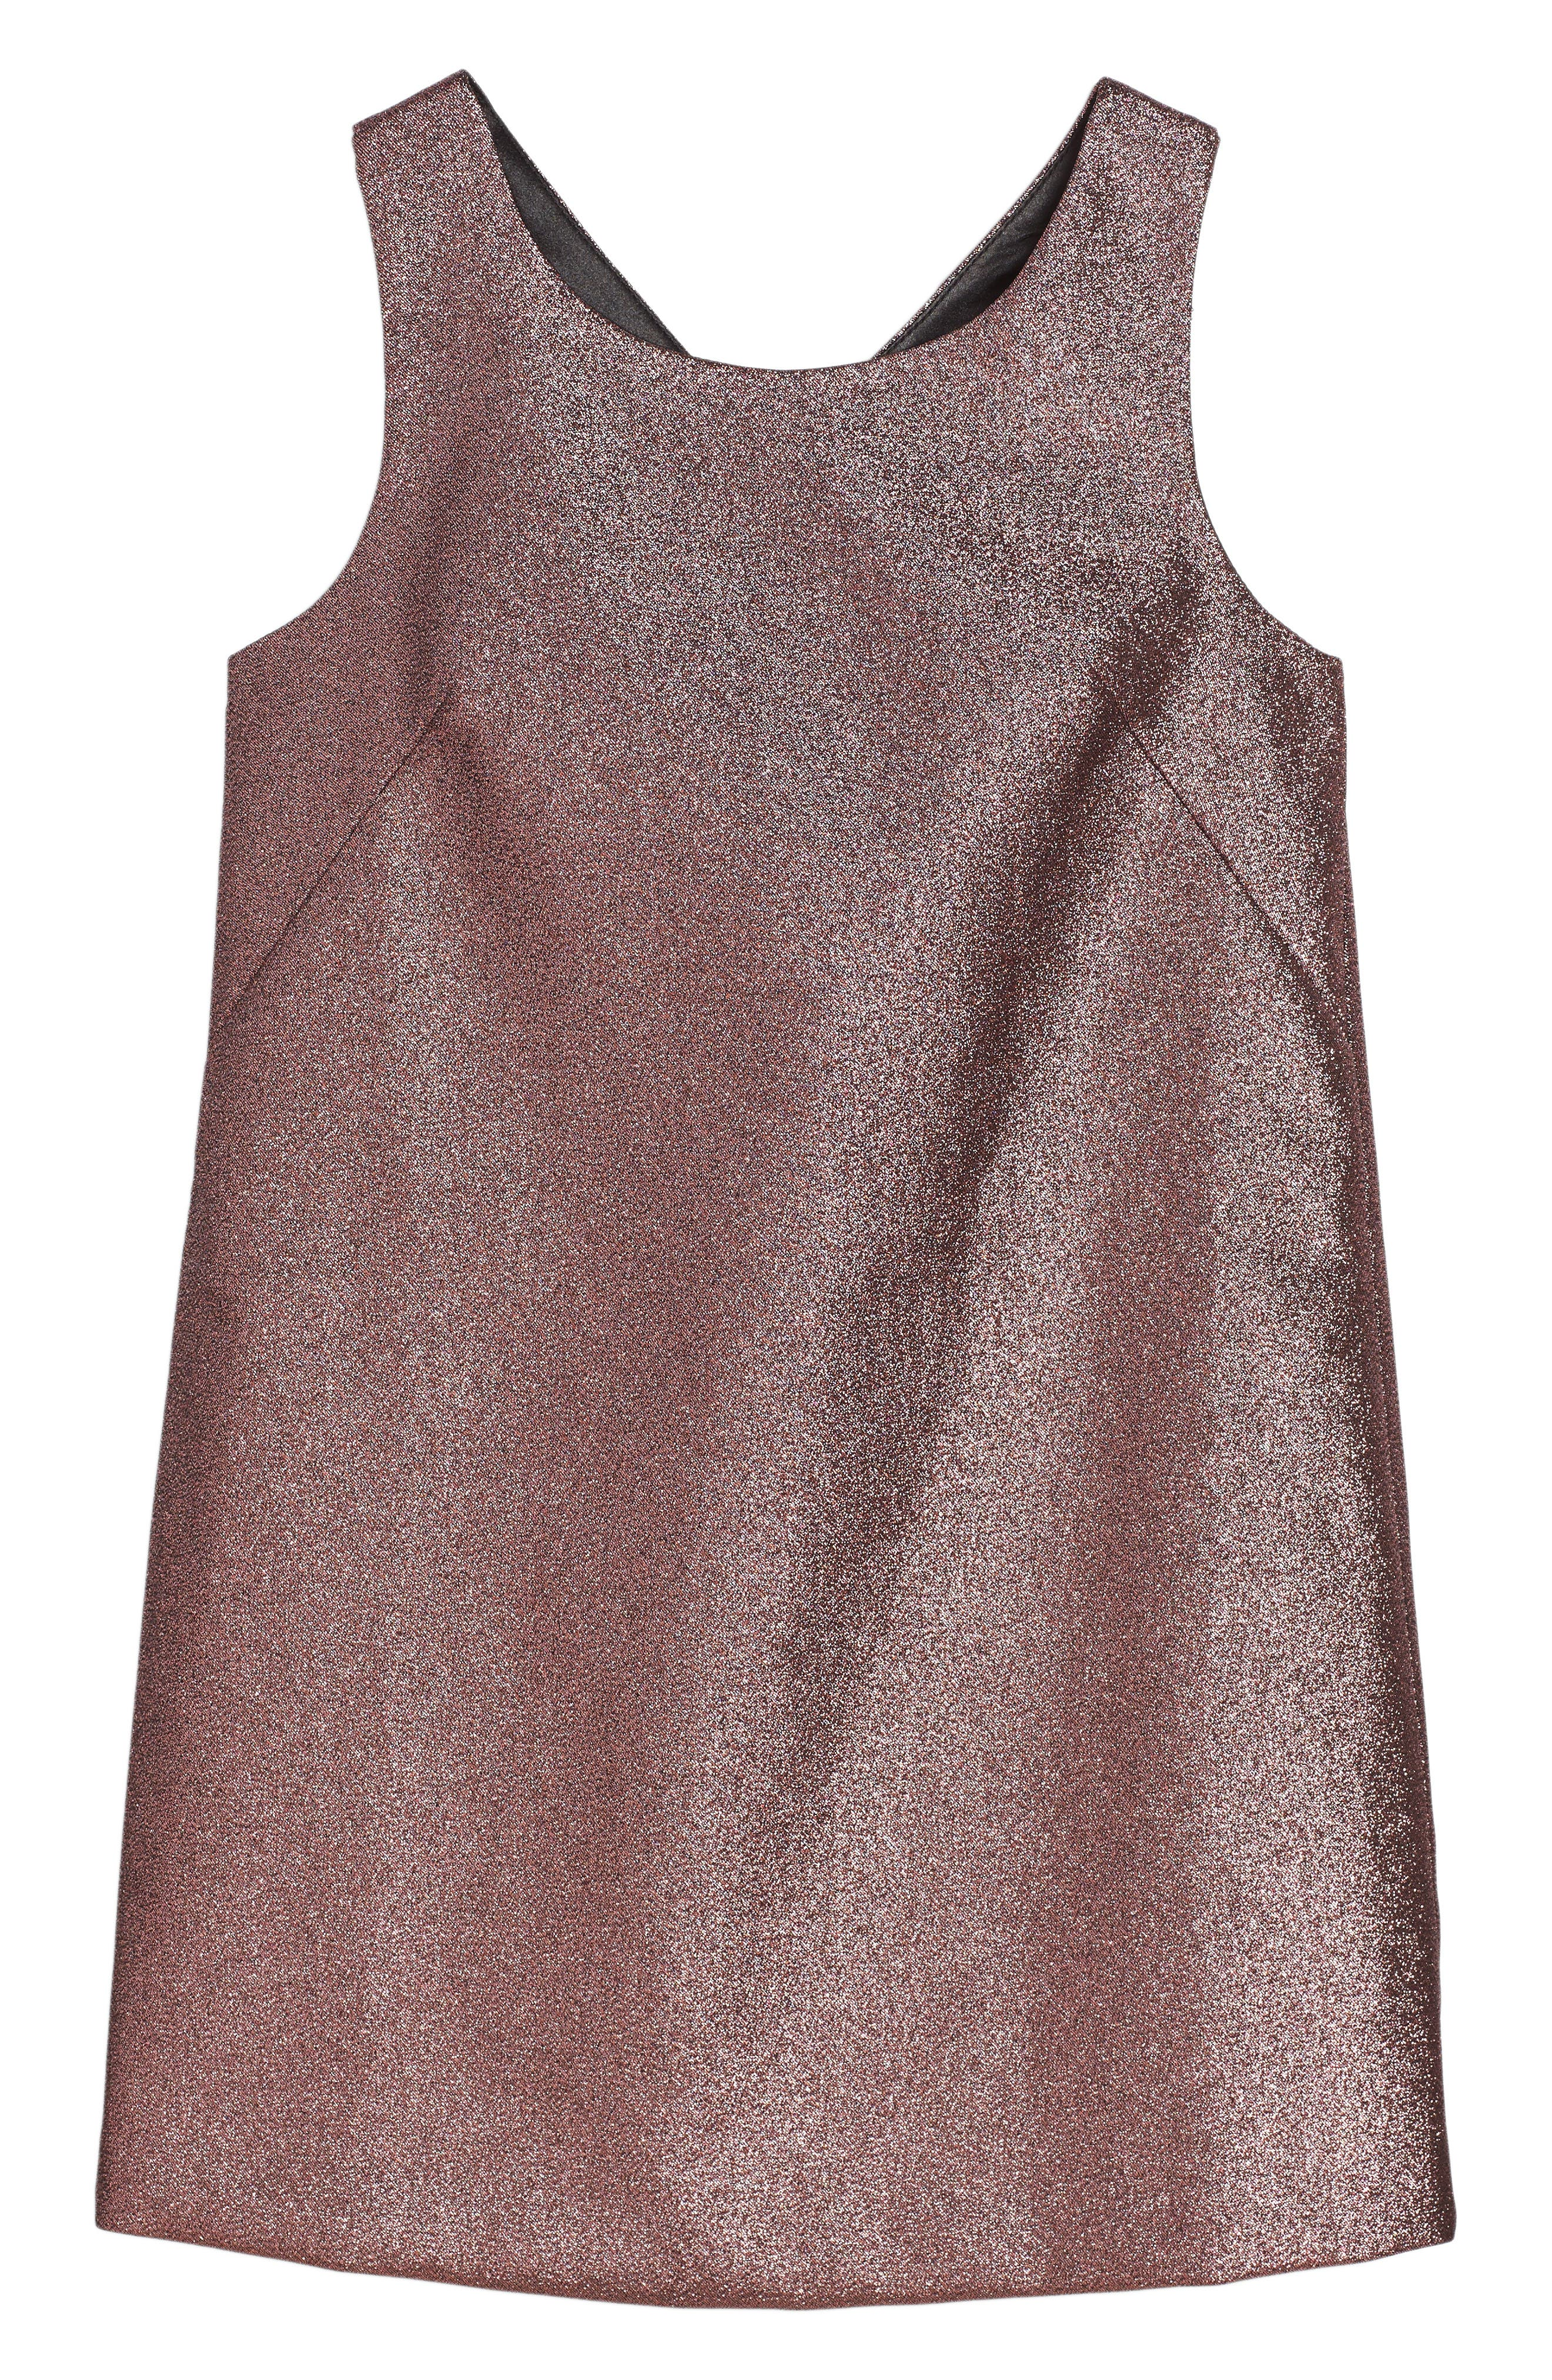 Milly Minis Back Bow Shift Dress (Big Girls)